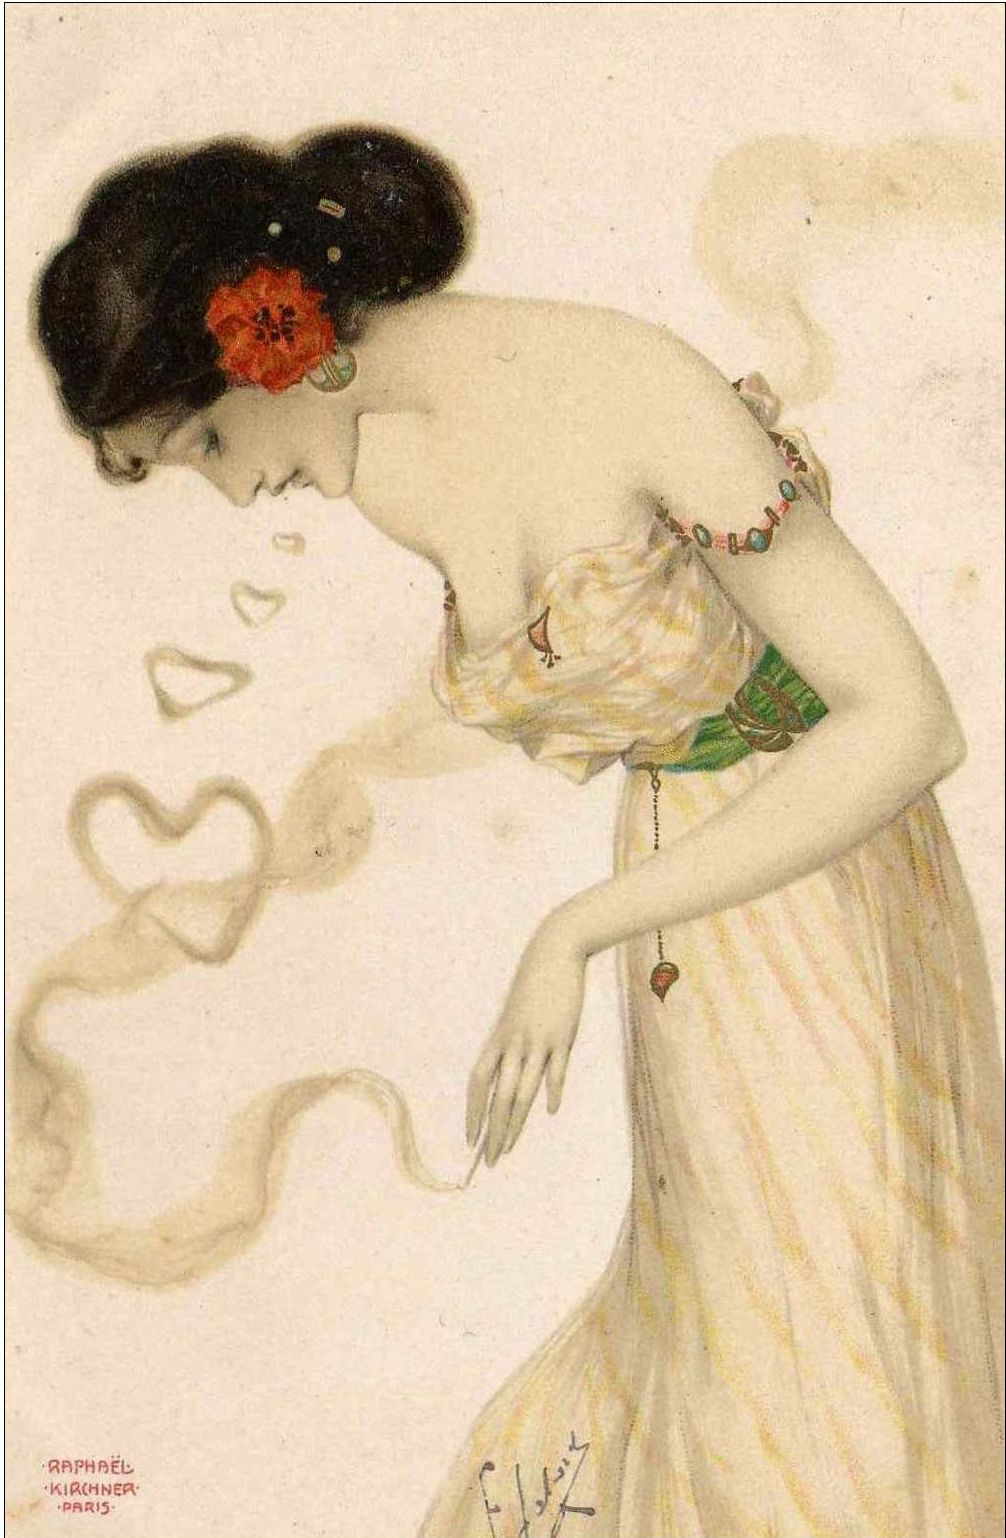 http://uploads5.wikipaintings.org/images/raphael-kirchner/smoking-women-1904.jpg